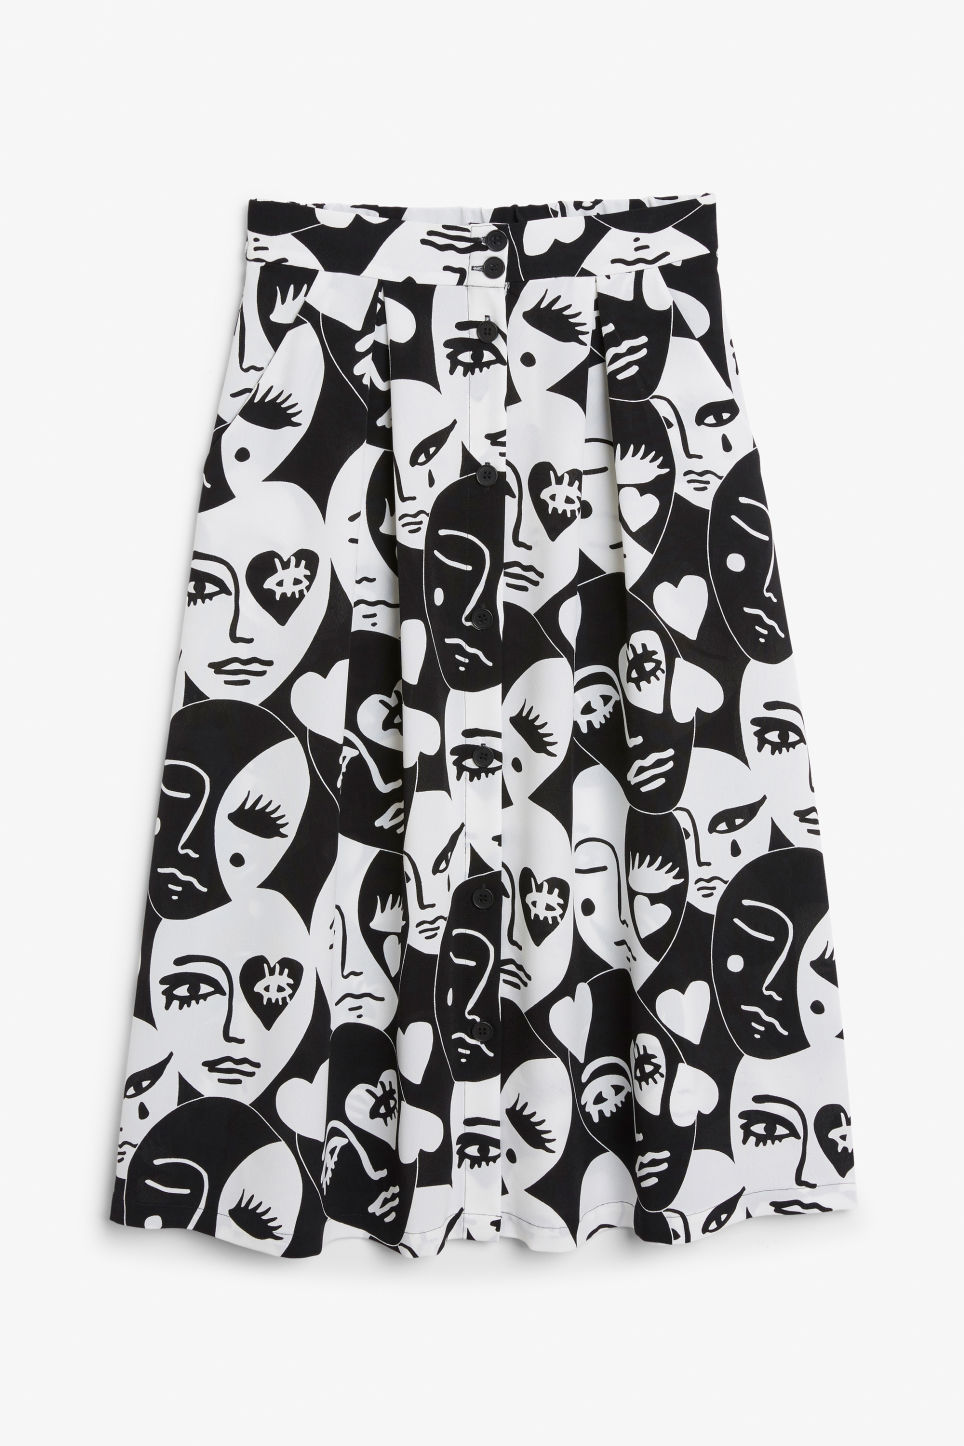 1. the midi skirt - MONKI: Midi Skirt, £25Perfect for both formal and day looks, pair a midi skirt with heeled or flat sandals. We absolutely love this button-down, printed one from Monki; we've chosen the monochrome faces pattern, but they have loads of choices. Bonus: it has pockets!